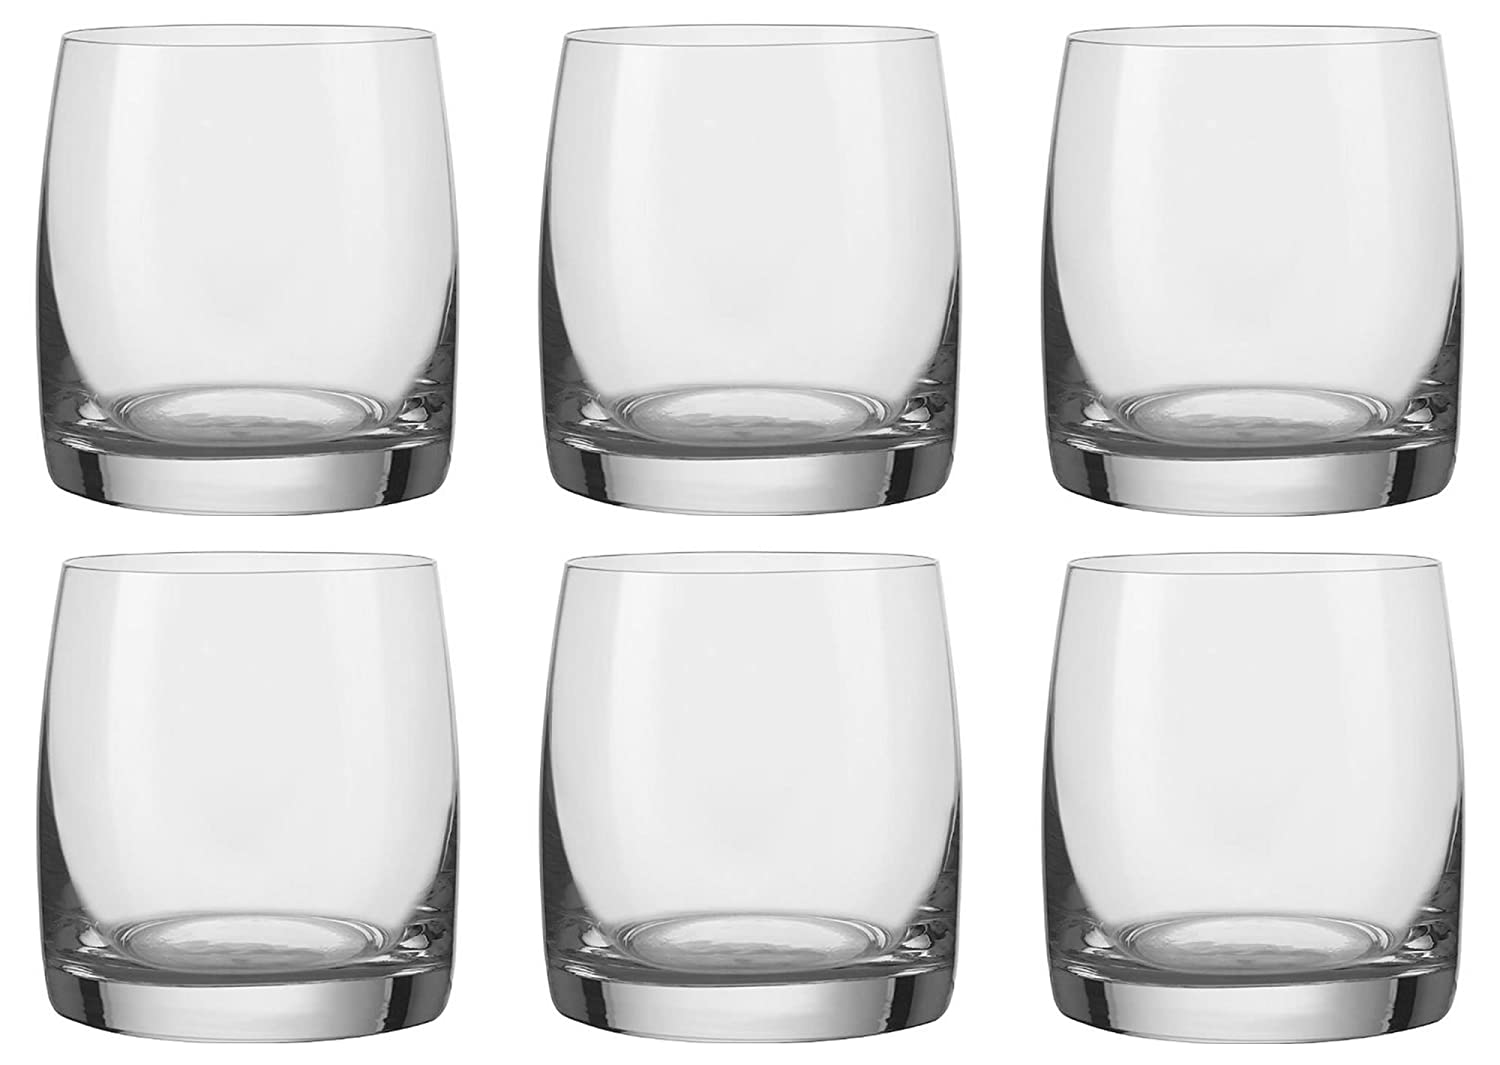 bohemia crystal ideal whiskey tumblers set of  large ml oz  - bohemia crystal ideal whiskey tumblers set of  large ml oz glassesround modern designer glassware heavy base glass old fashioned for scotchor